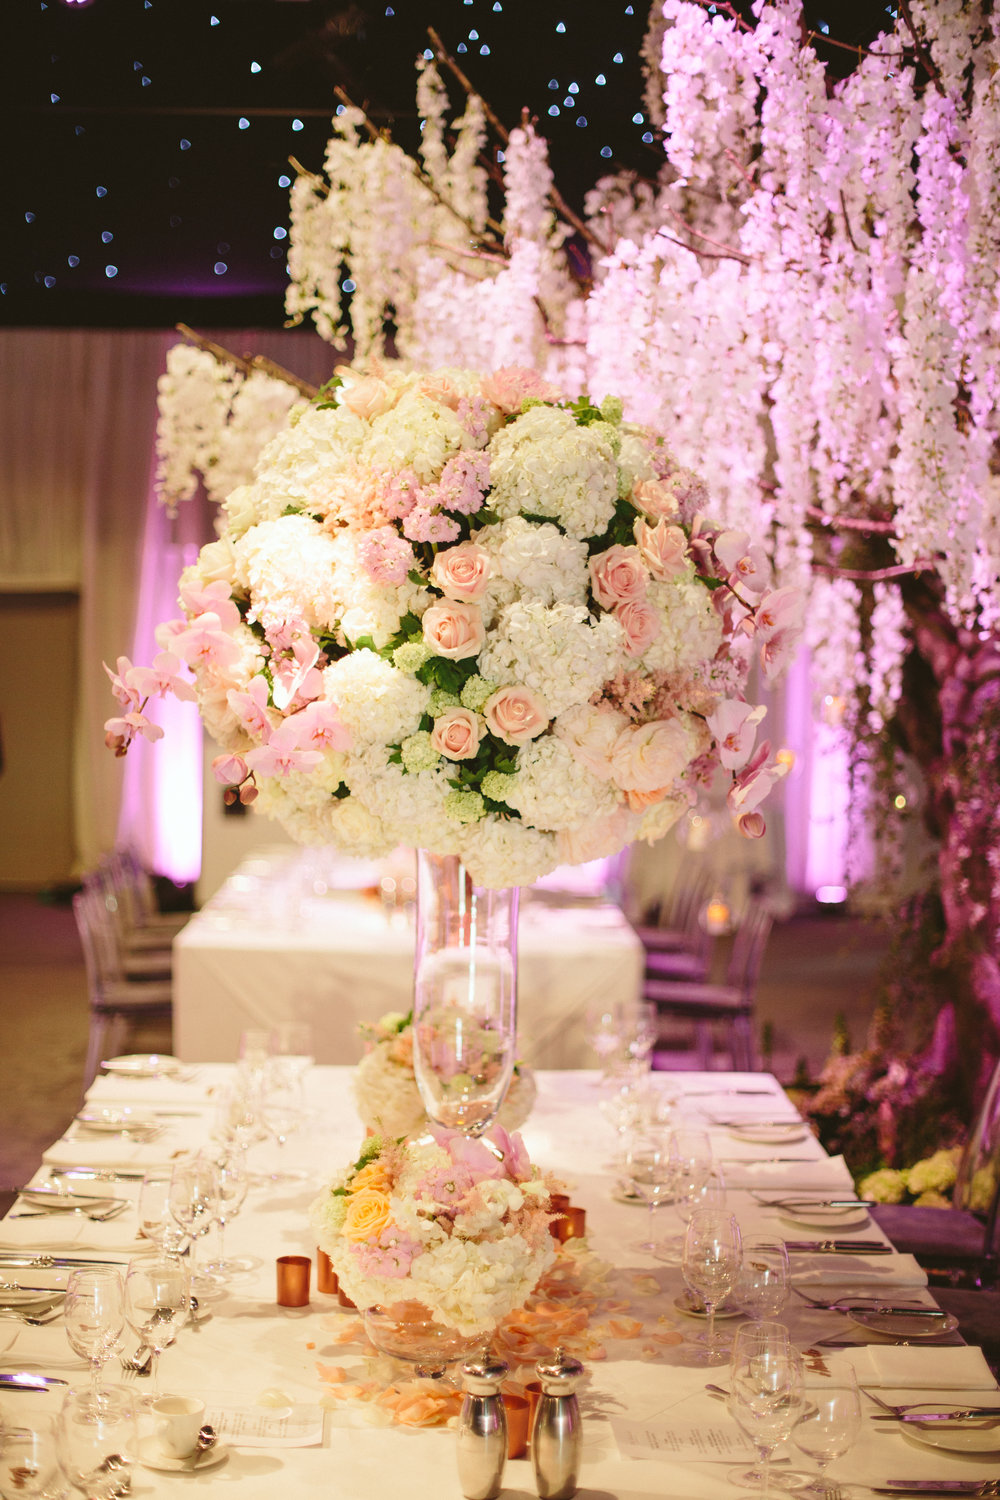 Luxury Wedding Table Centre.jpg